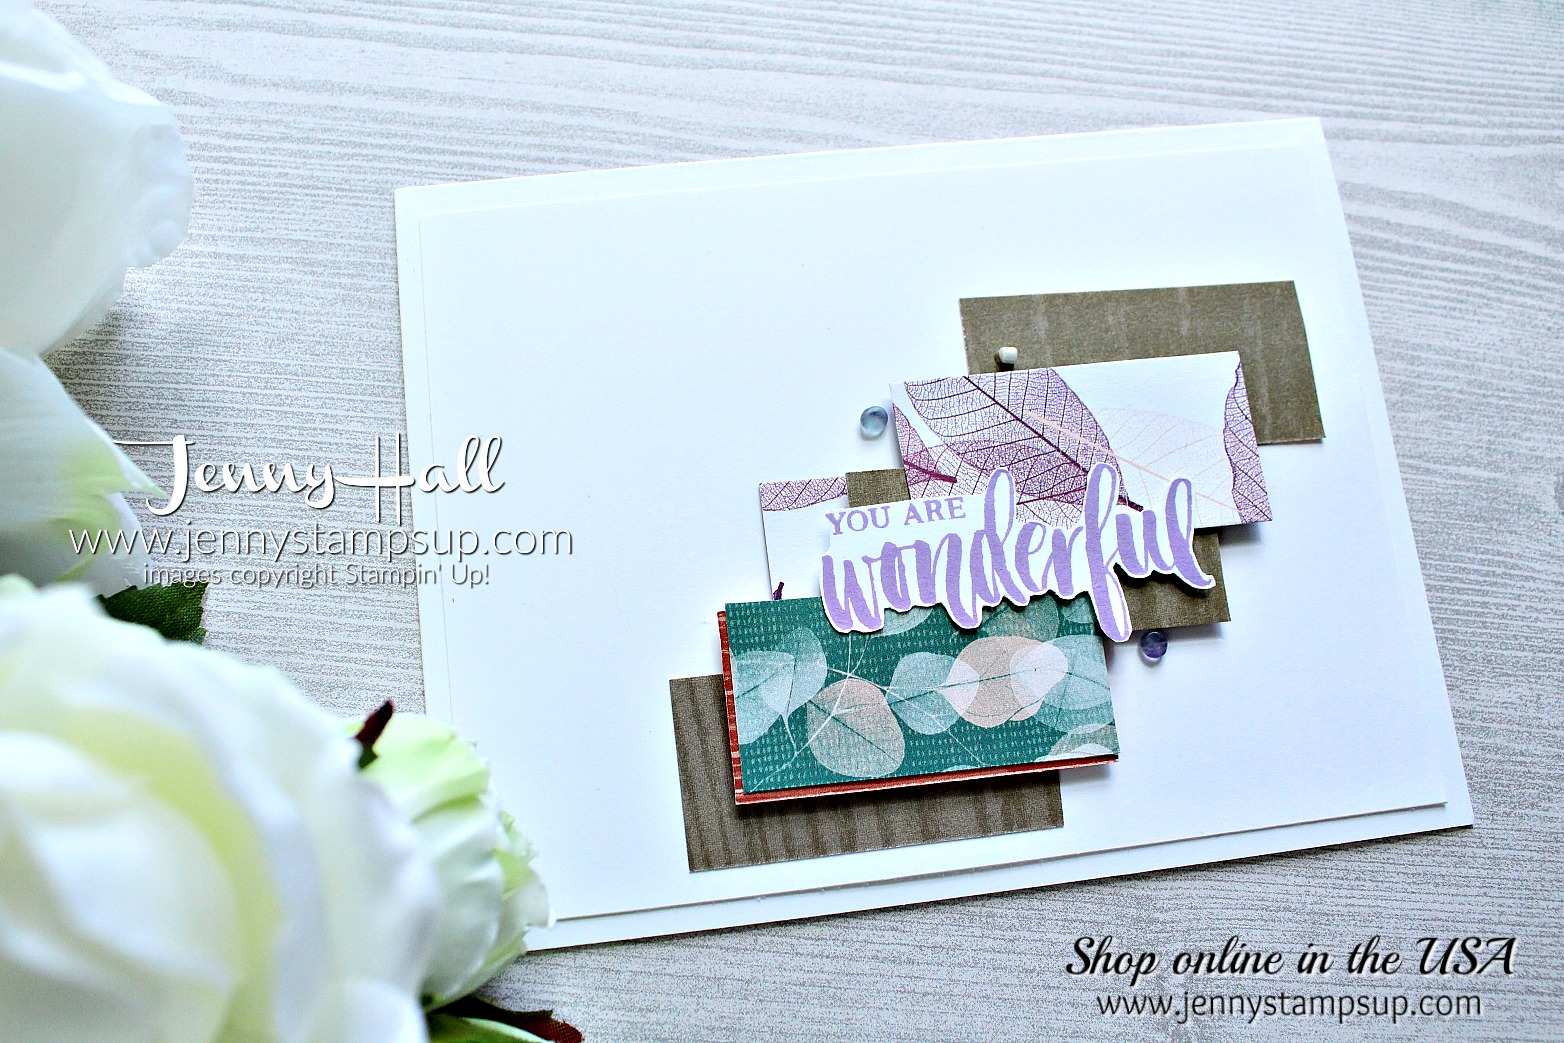 May Ink & Inspiration Blog Hop card created by Jenny Hall at www.jennystampsup.com for #cardmaking #ink&inspiration #bloghop #stamping #stampinup #jennyhall #jennystampsup #jennyhallstampinup